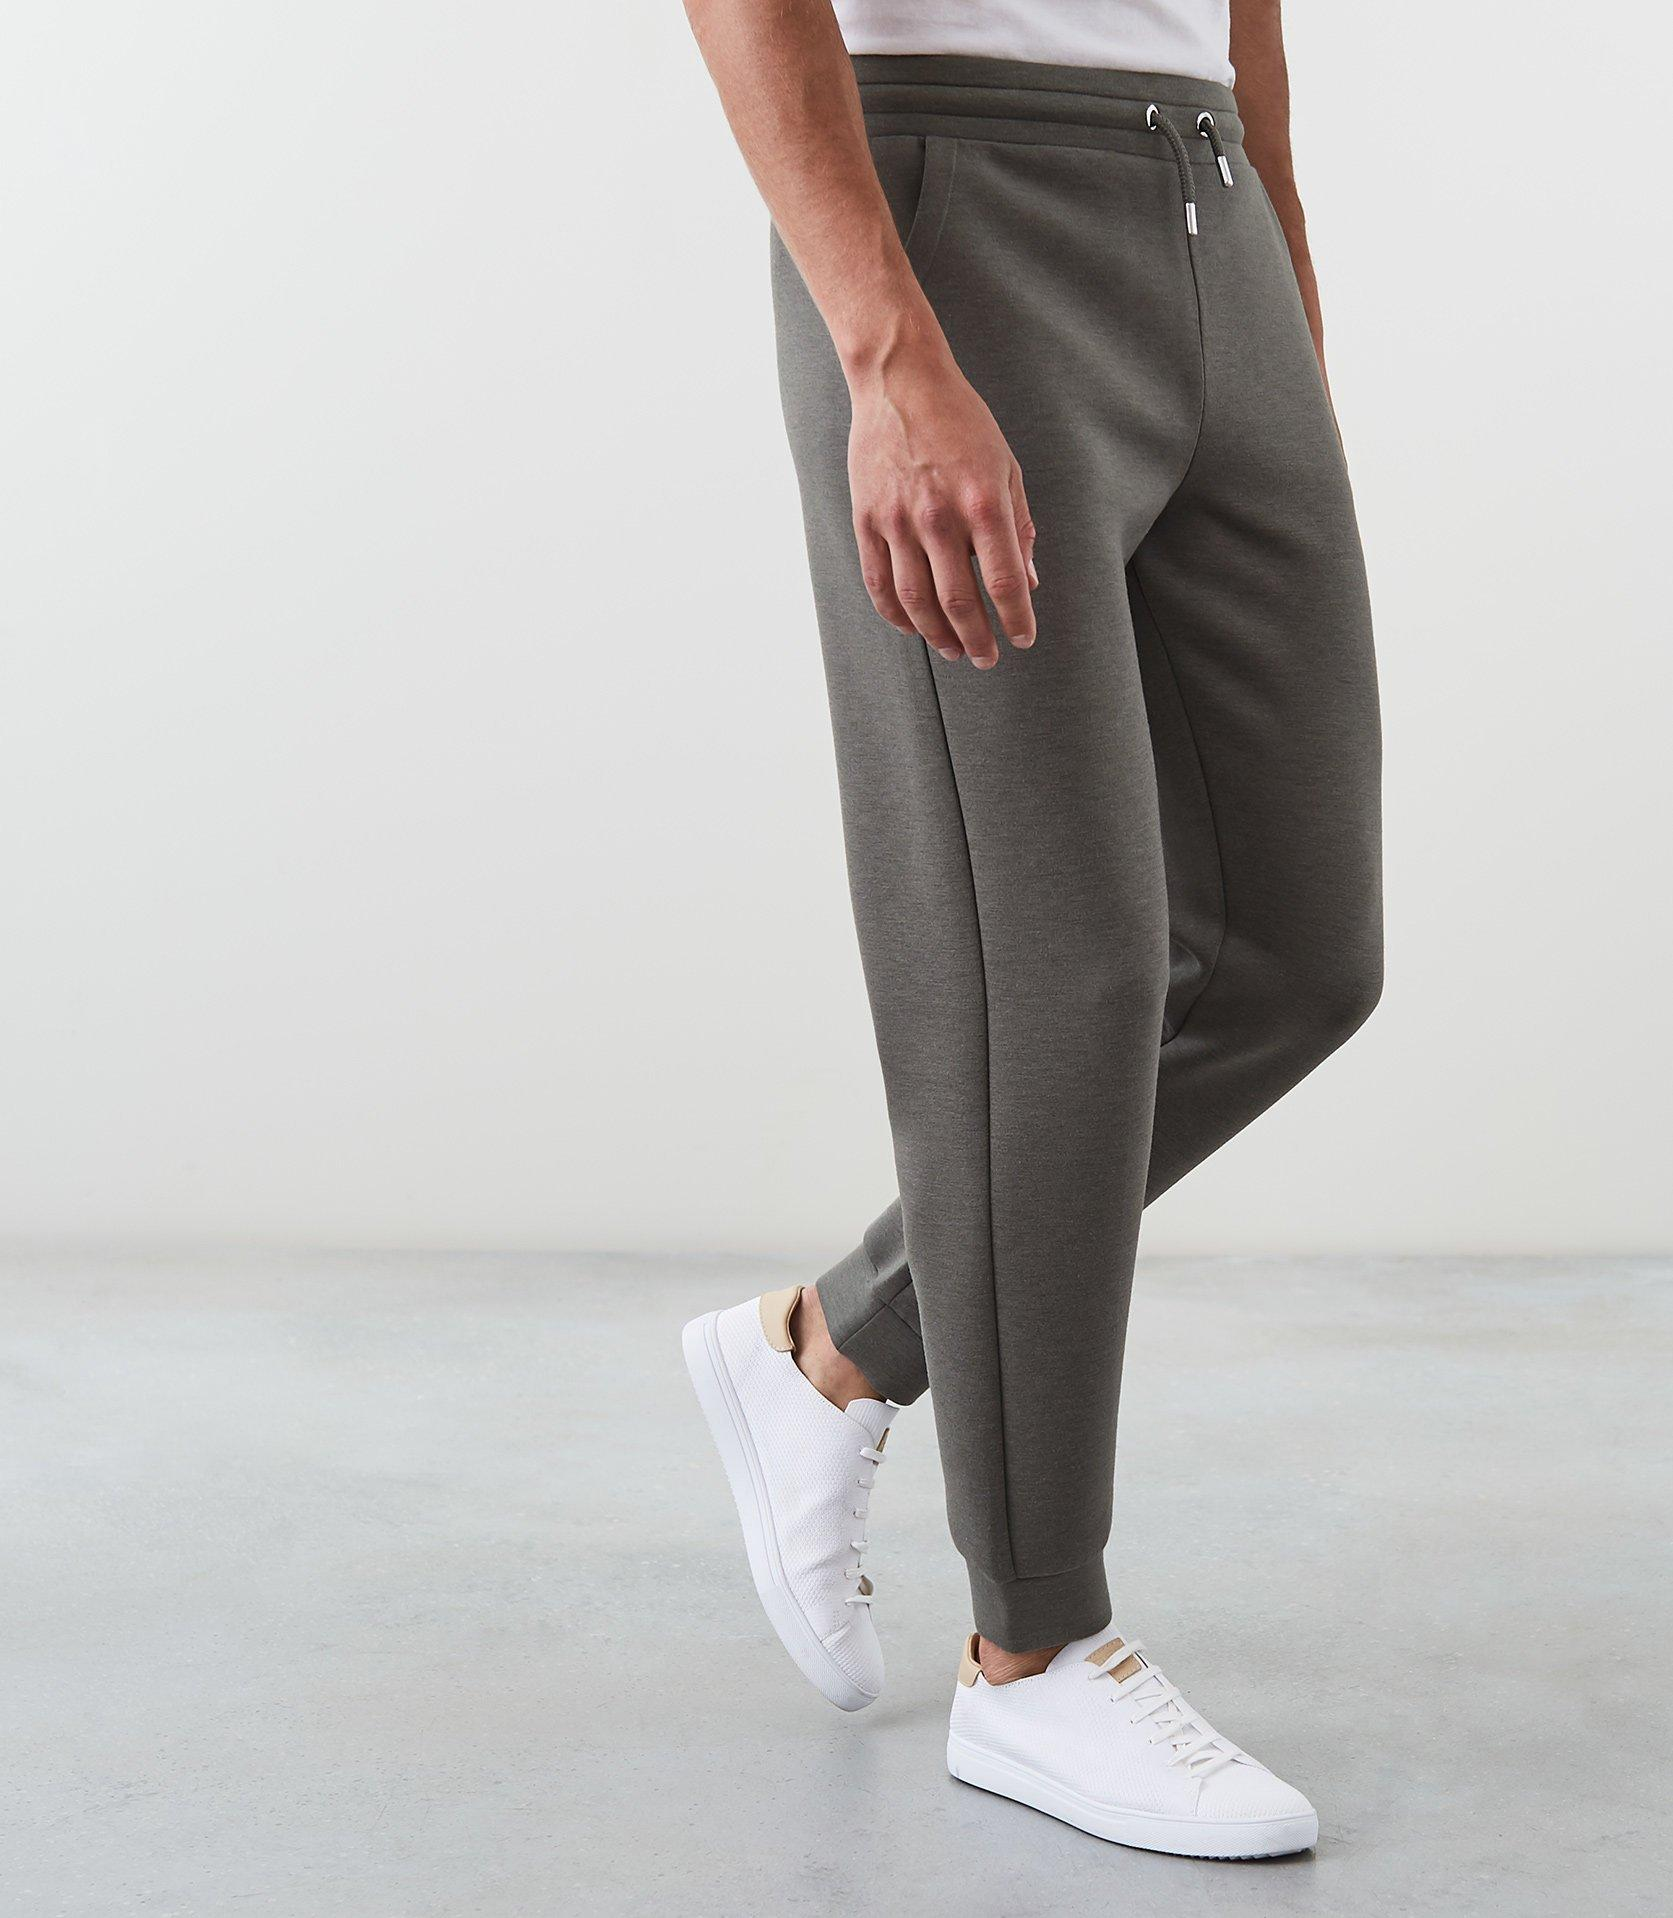 Reiss Synthetic Claude - Jersey Joggers in Sage (Grey) for Men